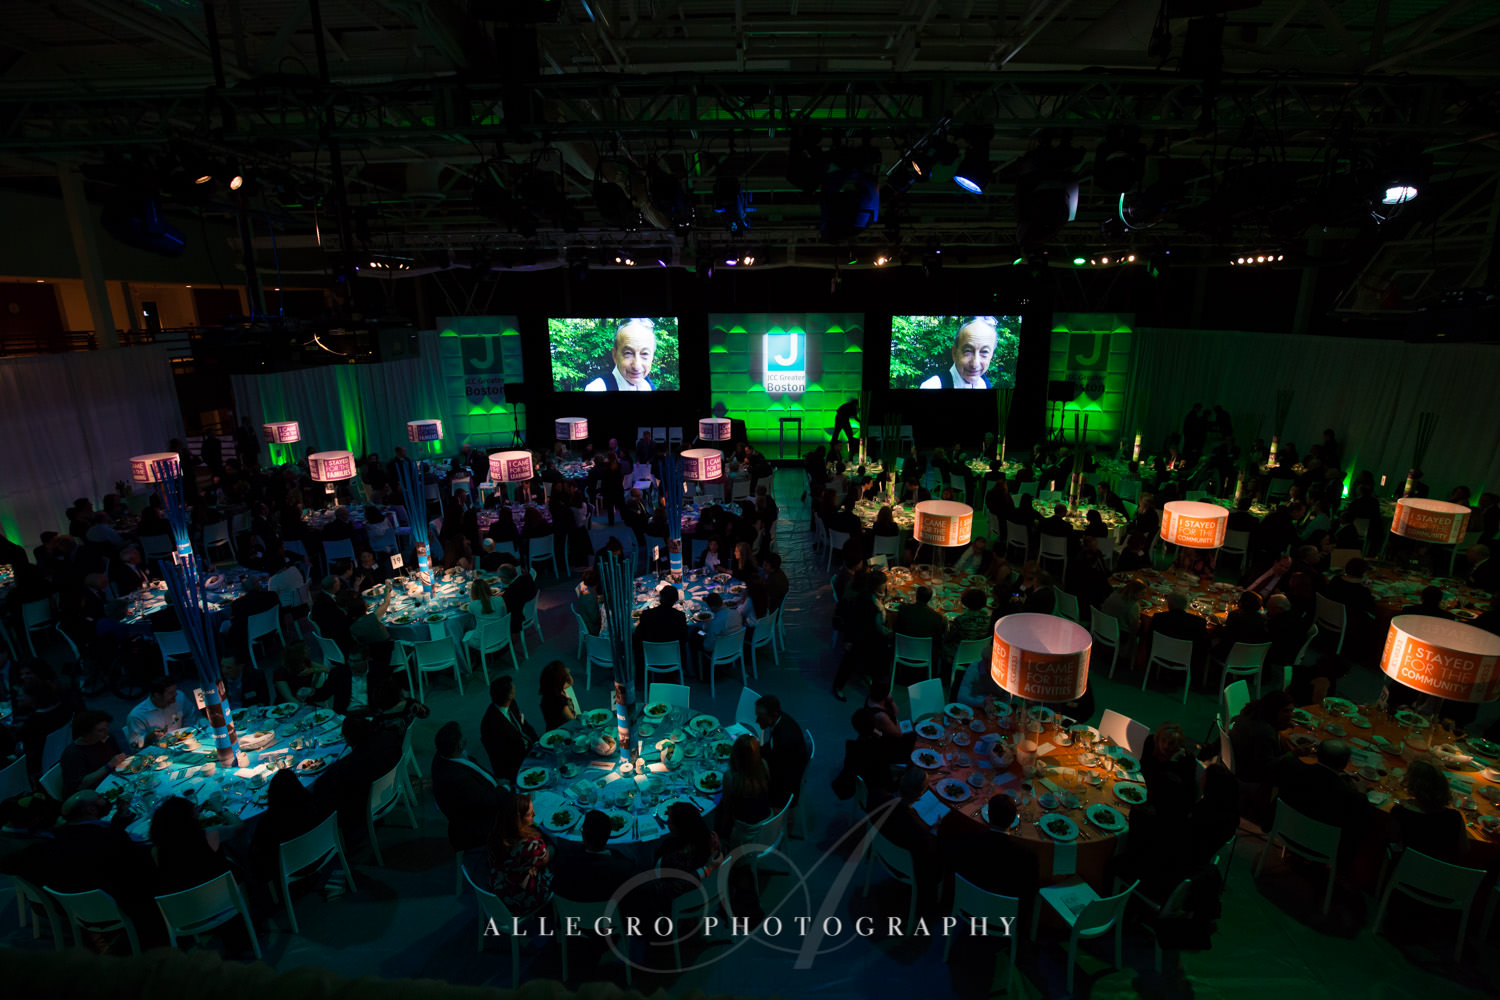 Nonprofit event photography by Allegro Photography